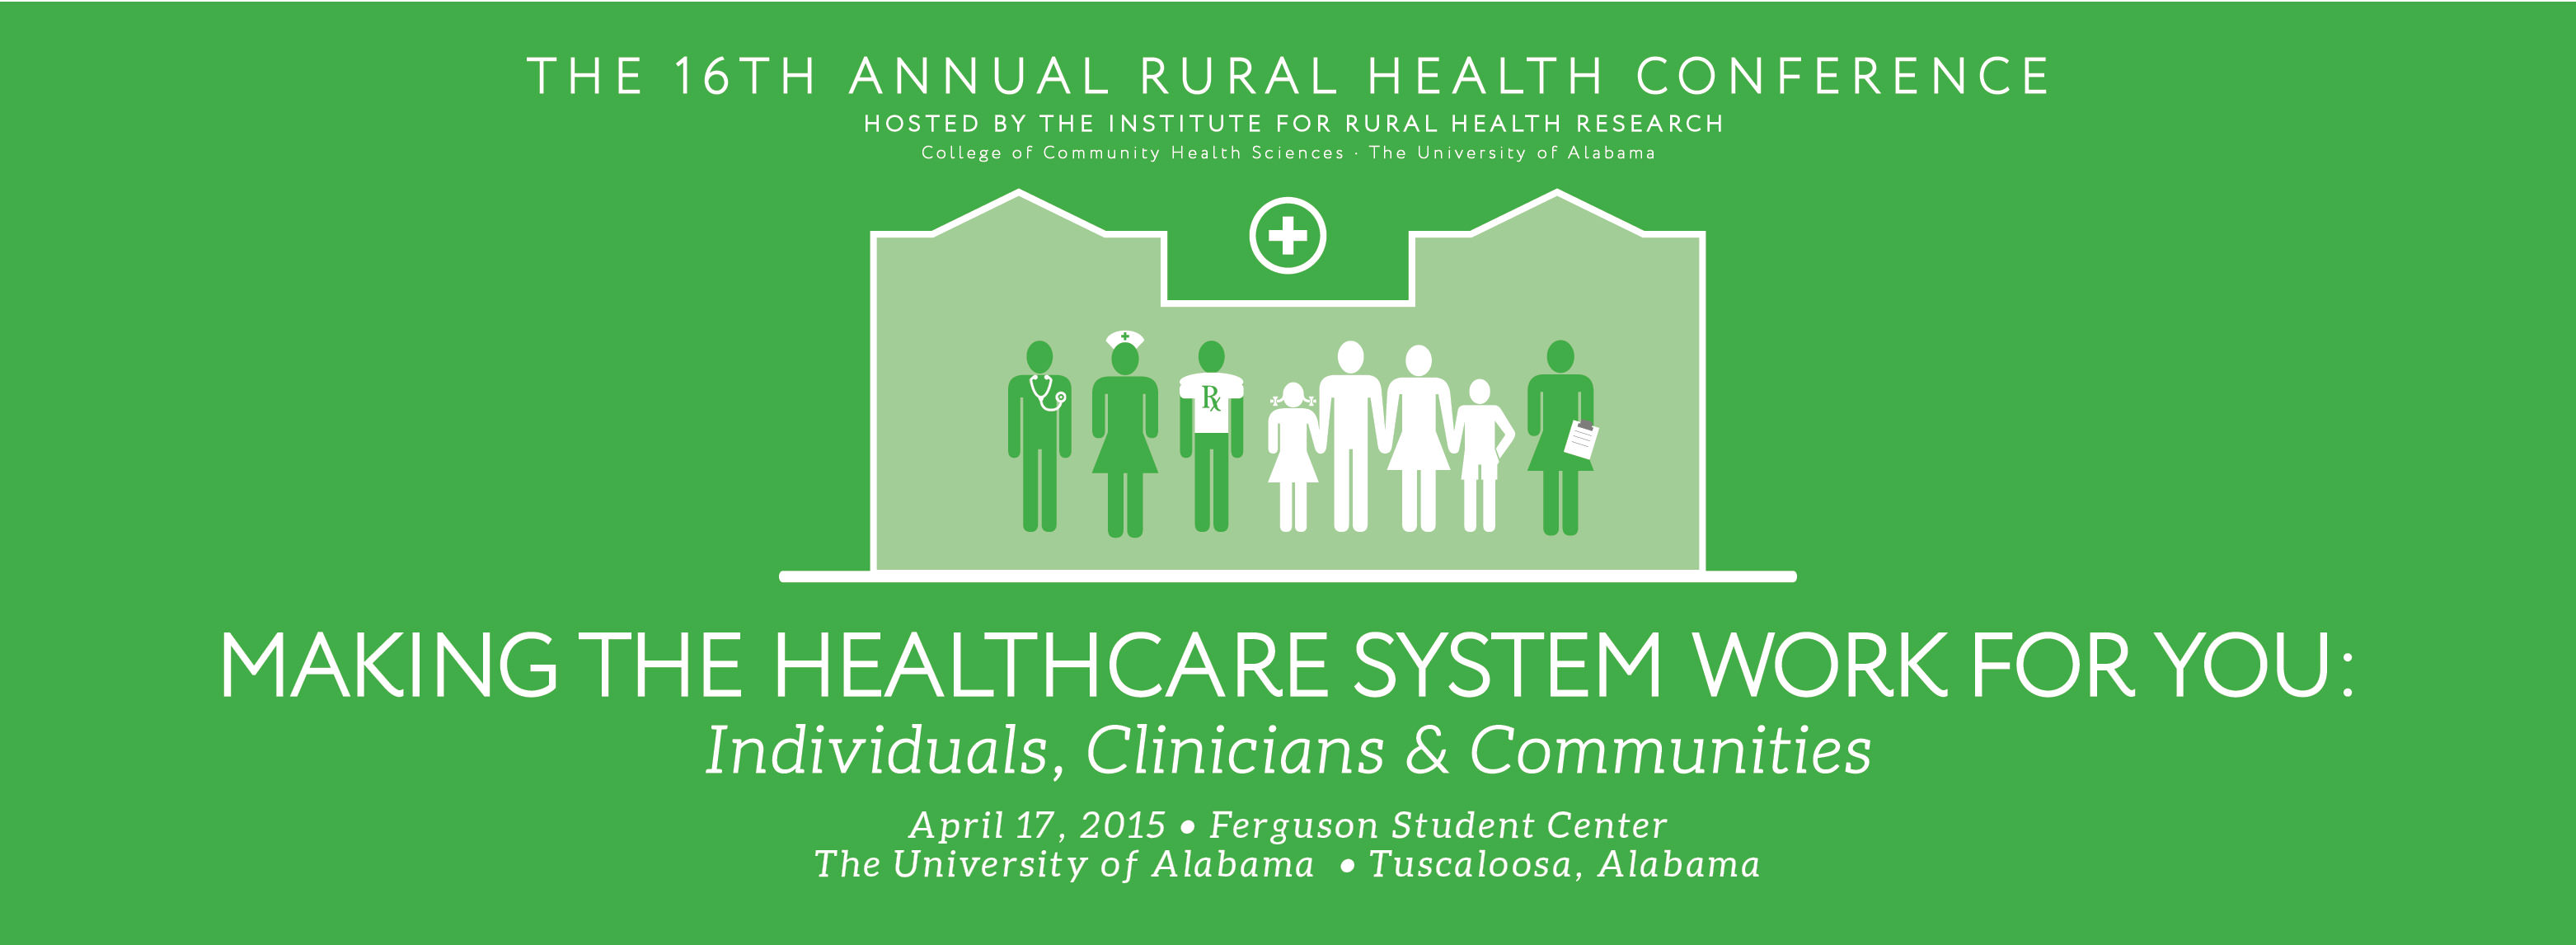 16th Rural Health Conference: Making the Healthcare System Work for You Individuals, Clinicians and Communities, April 17 2015 Ferguson Student Center the University of Alabama